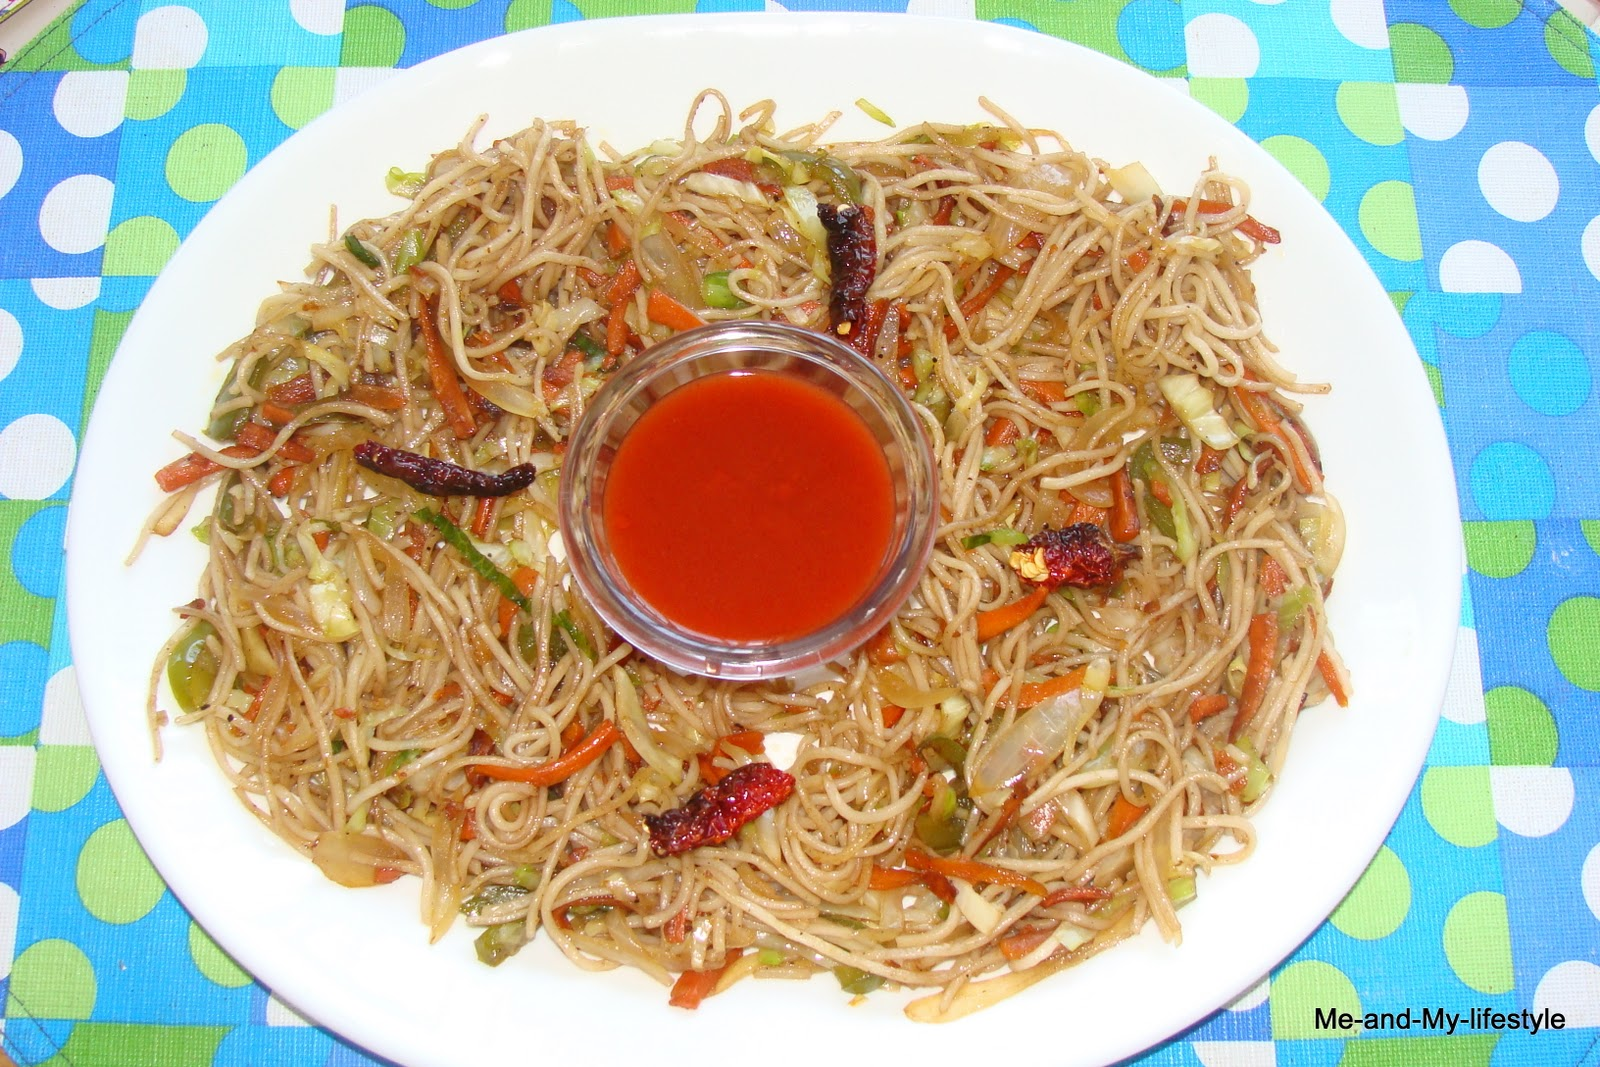 Chow Mein Recipes Recipe For Chow-mein is Quite